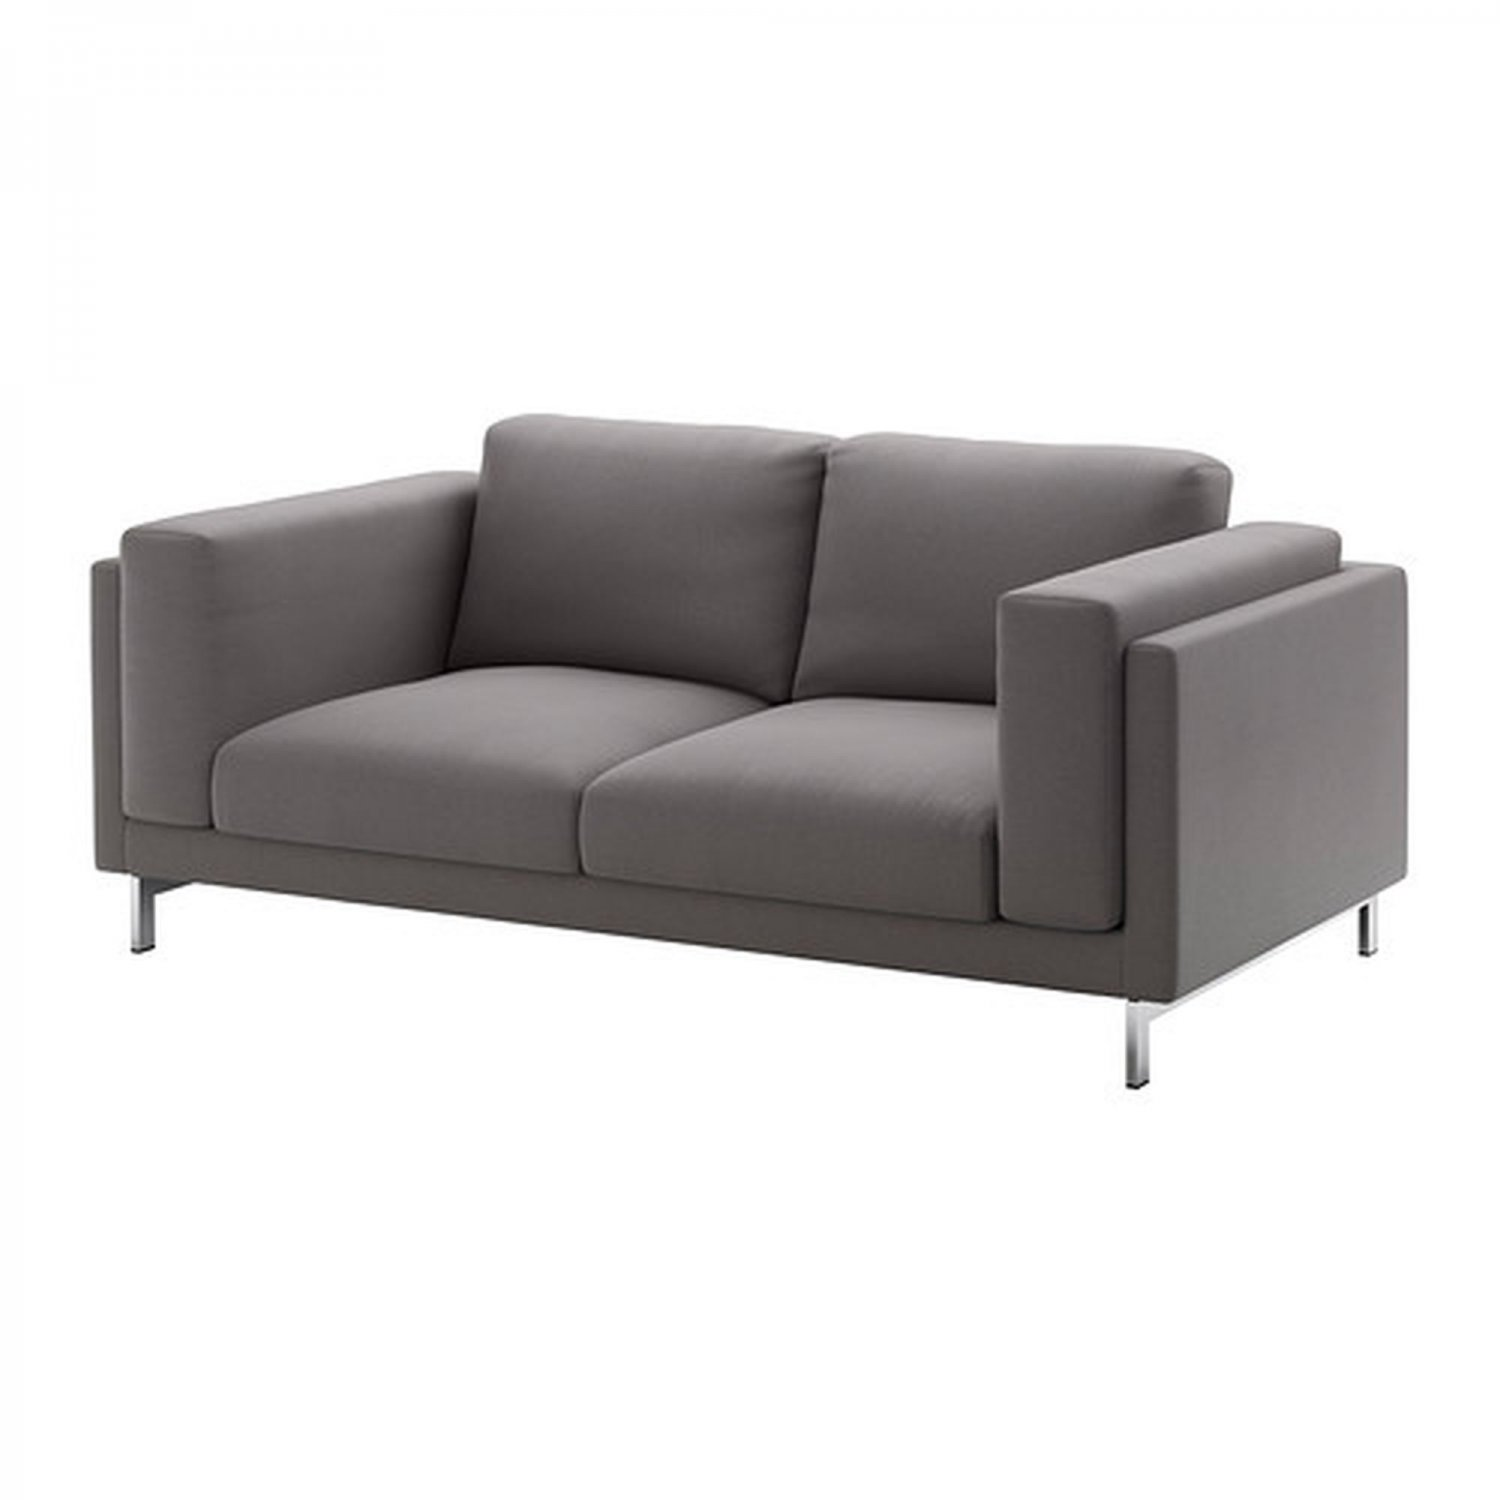 Ikea Loveseat Ikea Nockeby 2 Seat Sofa Slipcover Loveseat Cover Risane Gray Grey Linen Blend